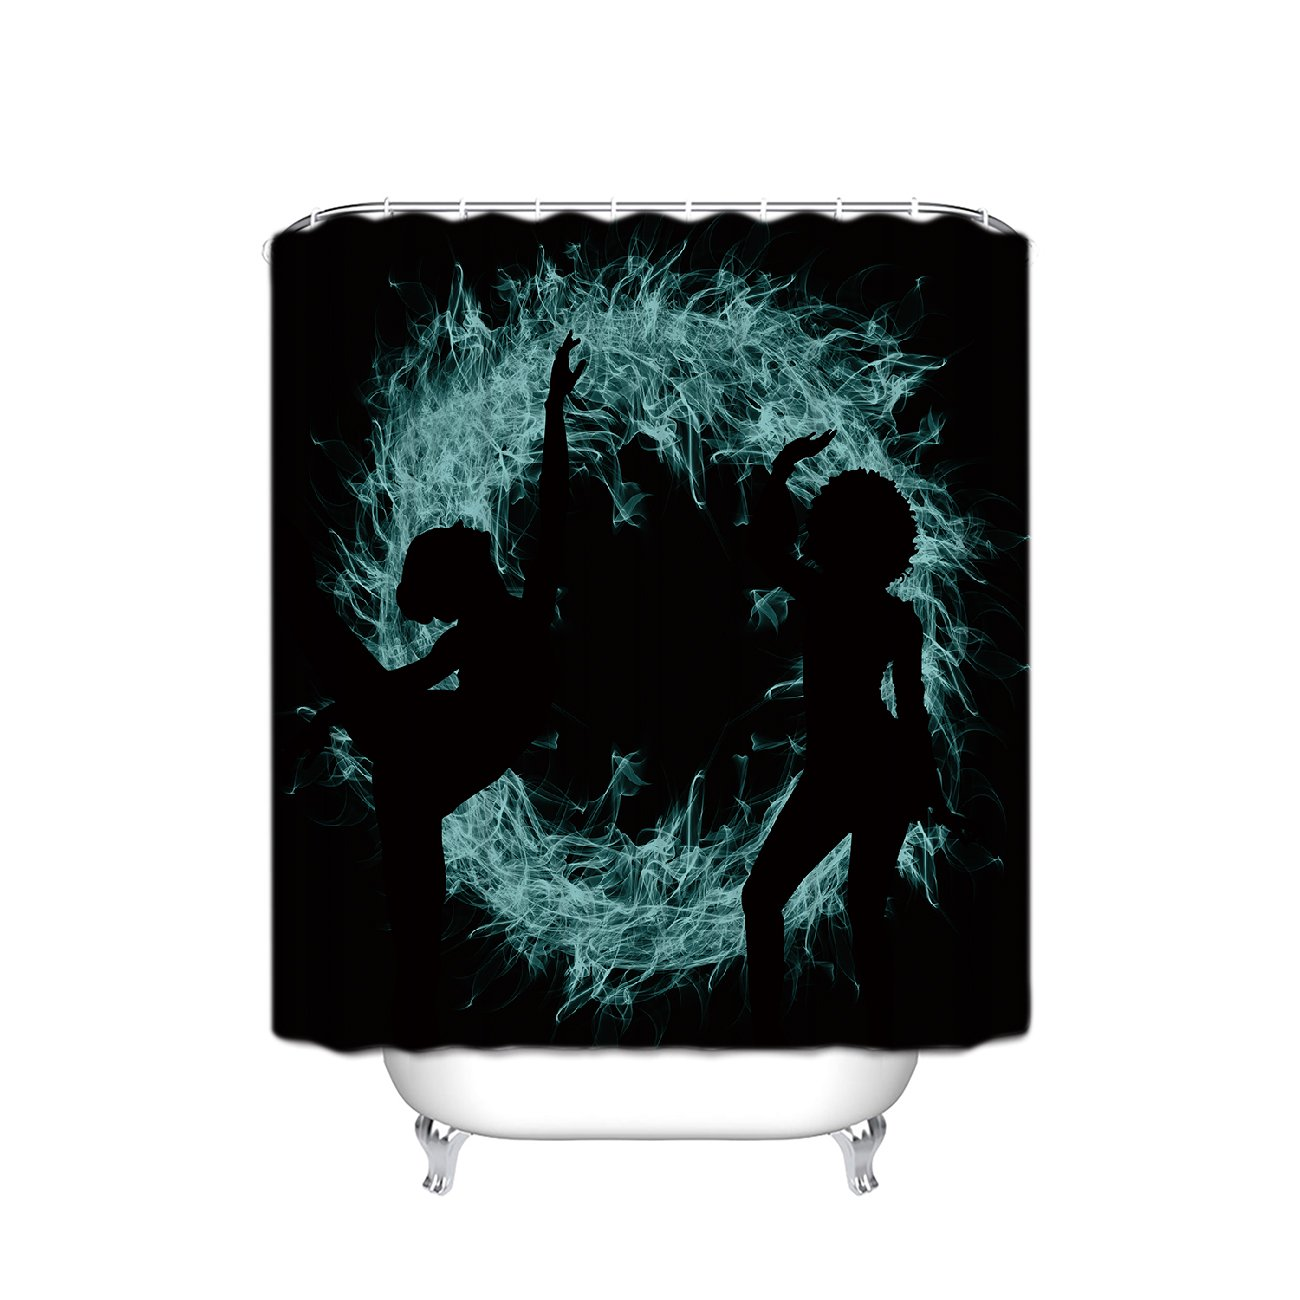 Prime Leader Lady Shadow Fire Dance Waterproof Bathroom Fabric Shower Curtain,36''(w) x 72''(h) with Hooks